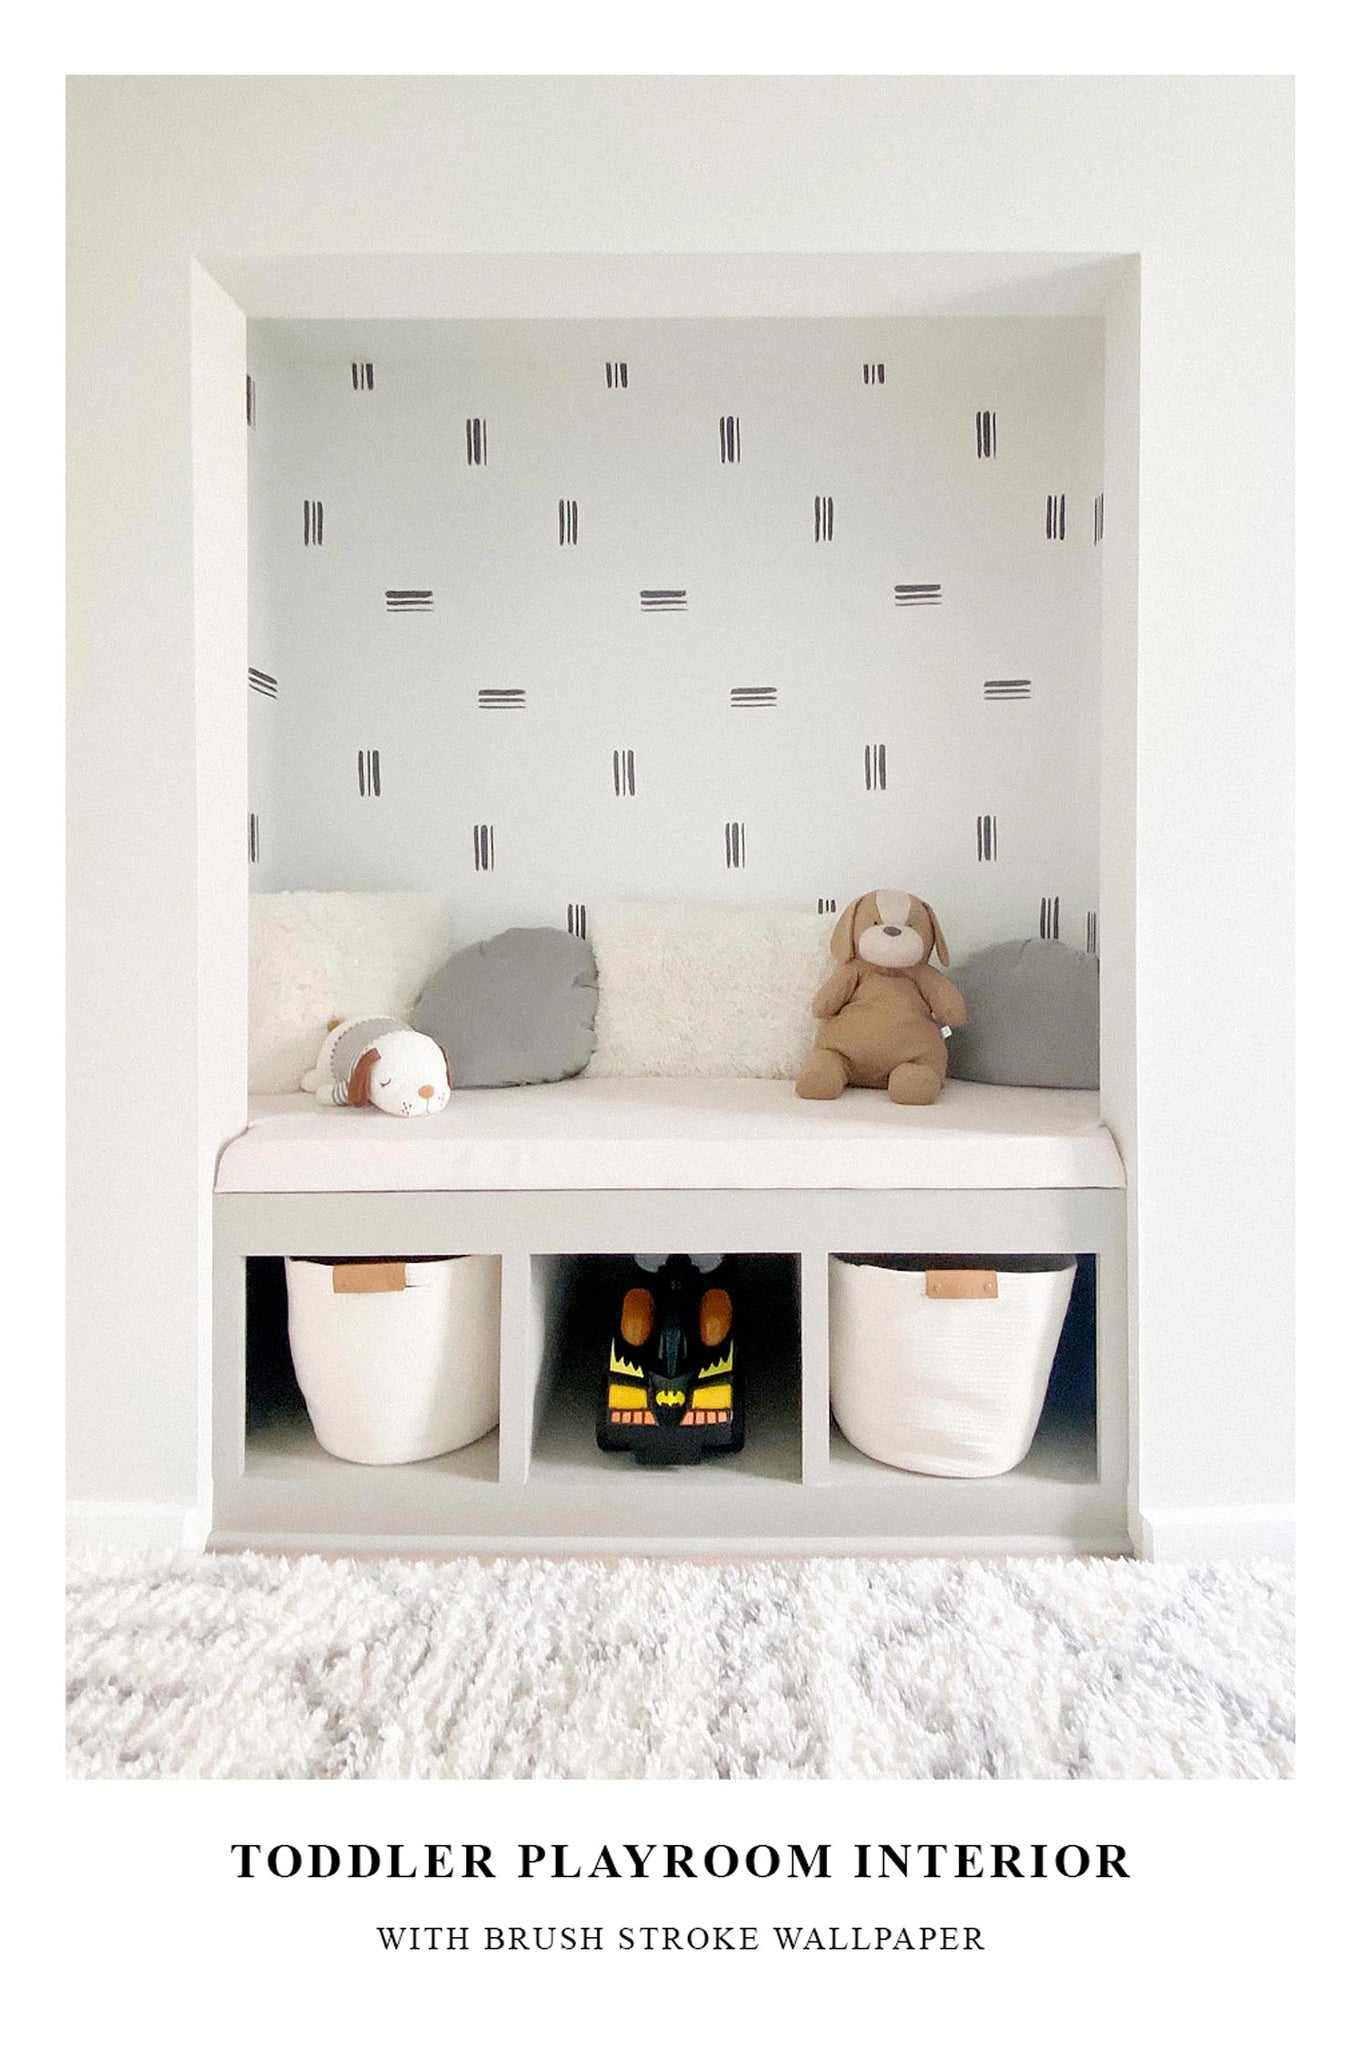 Toddler playroom interior inspiration with minimal brush stroke removable wallpaper in closet reading nook